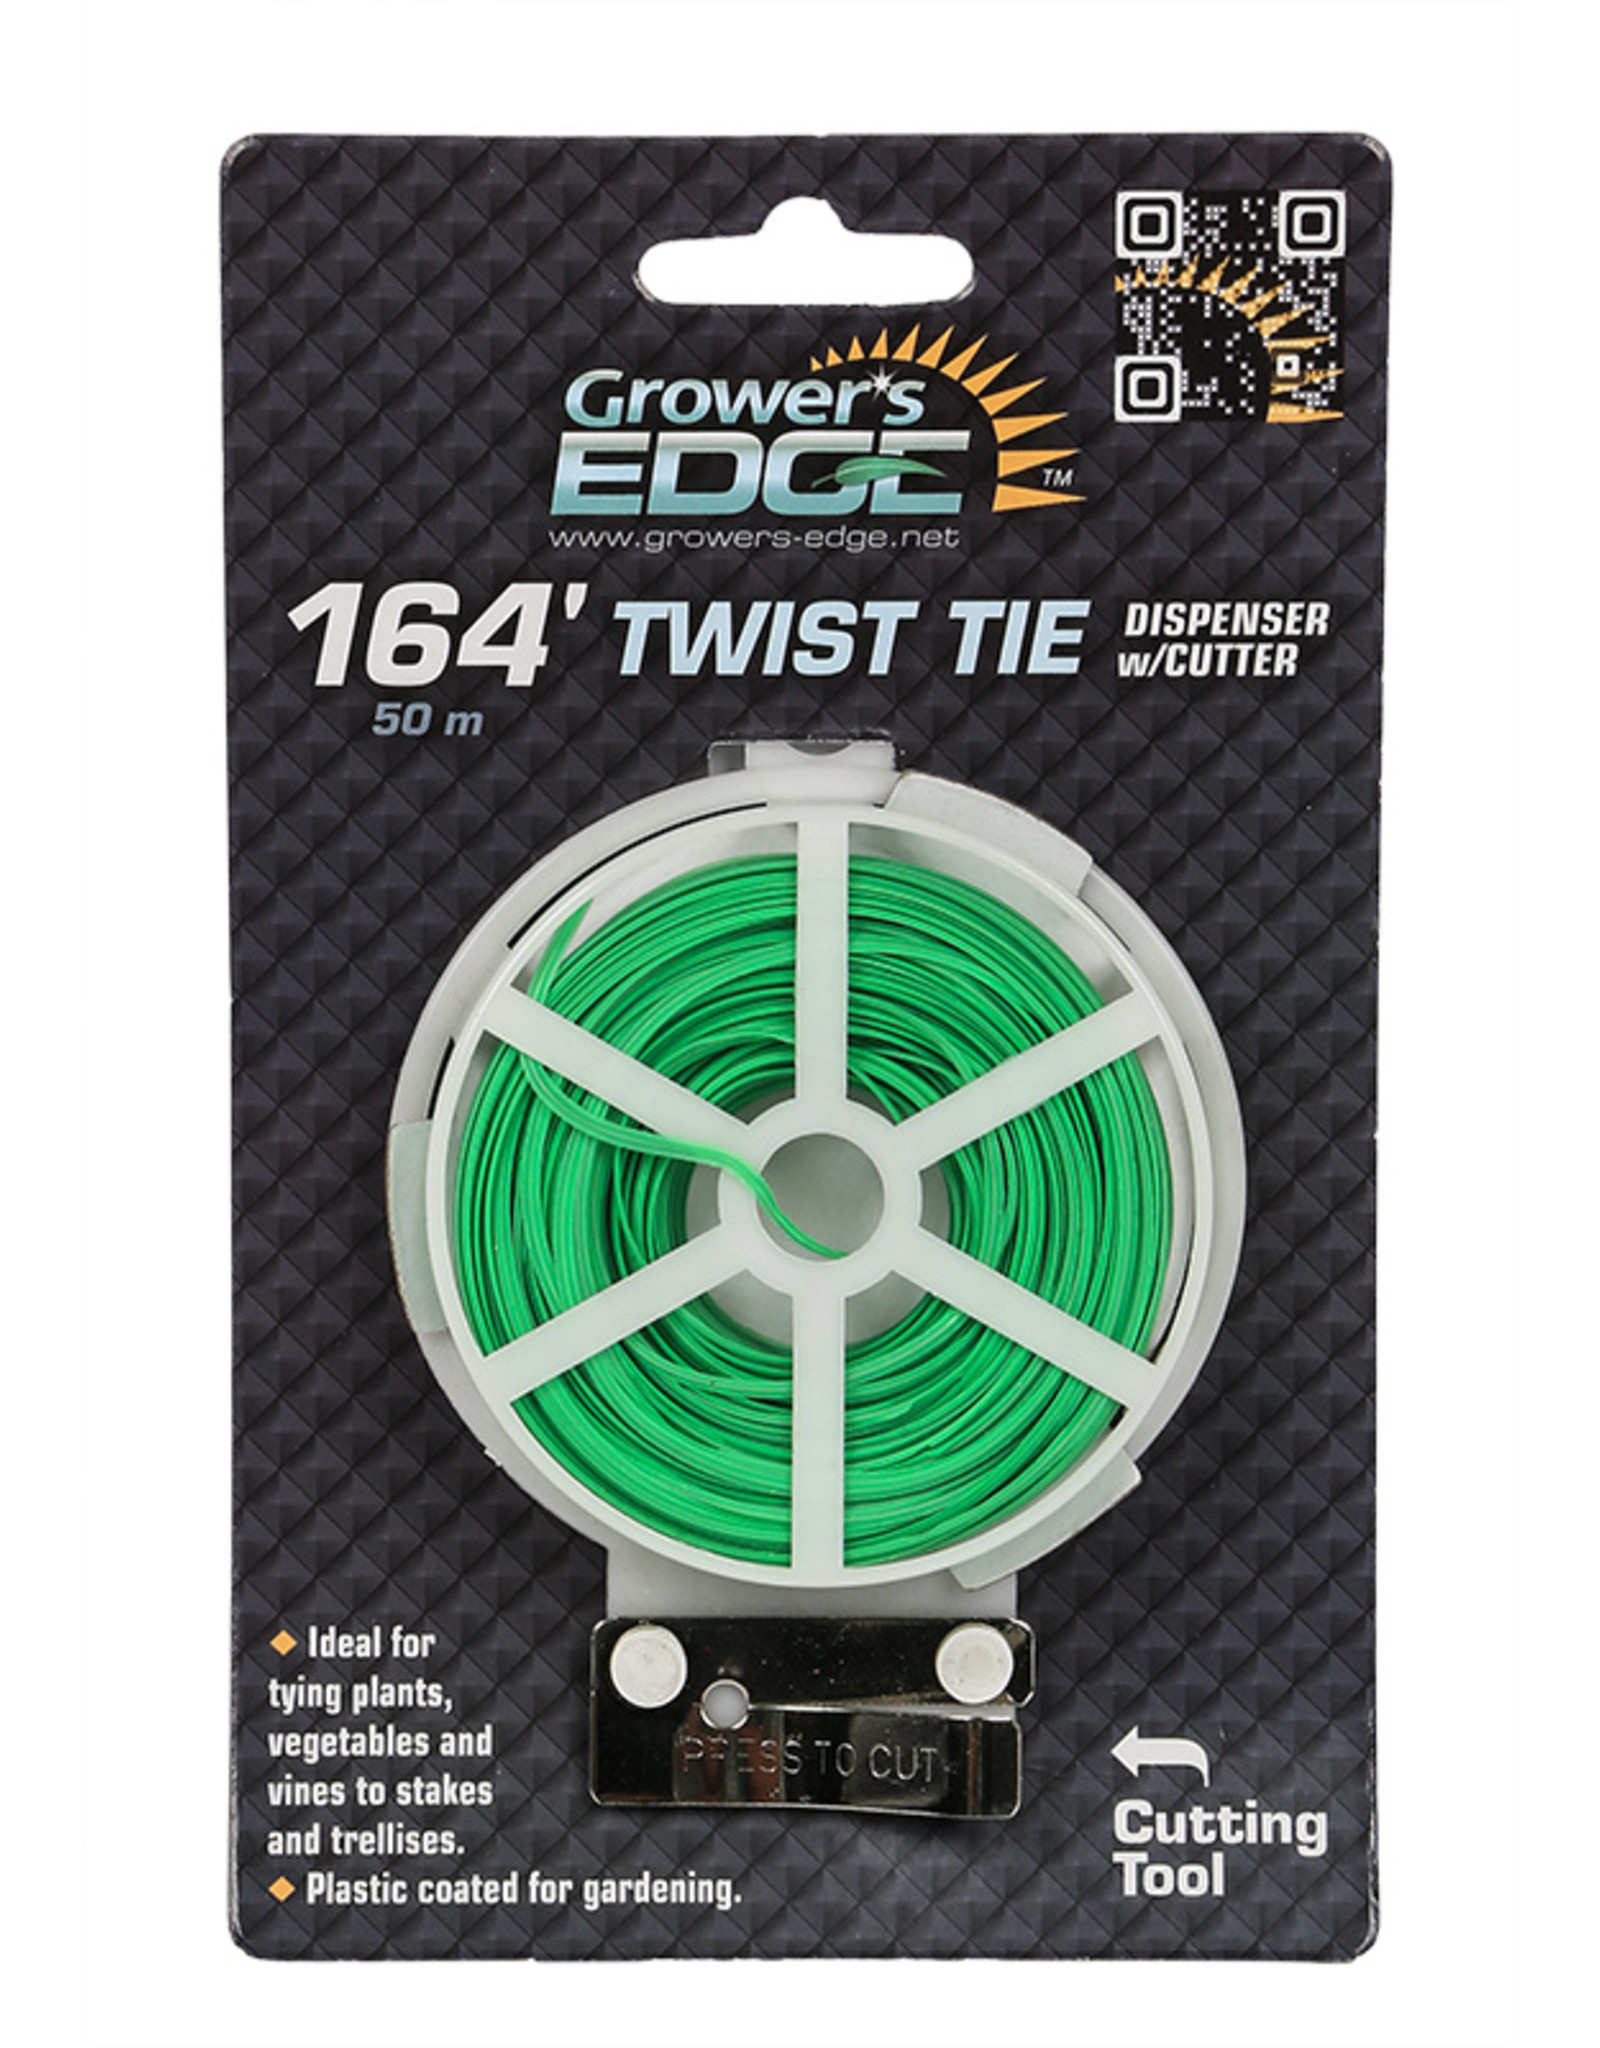 Growers Edge Grower's Edge Green Twist Tie Dispenser w/ Cutter - 164 ft